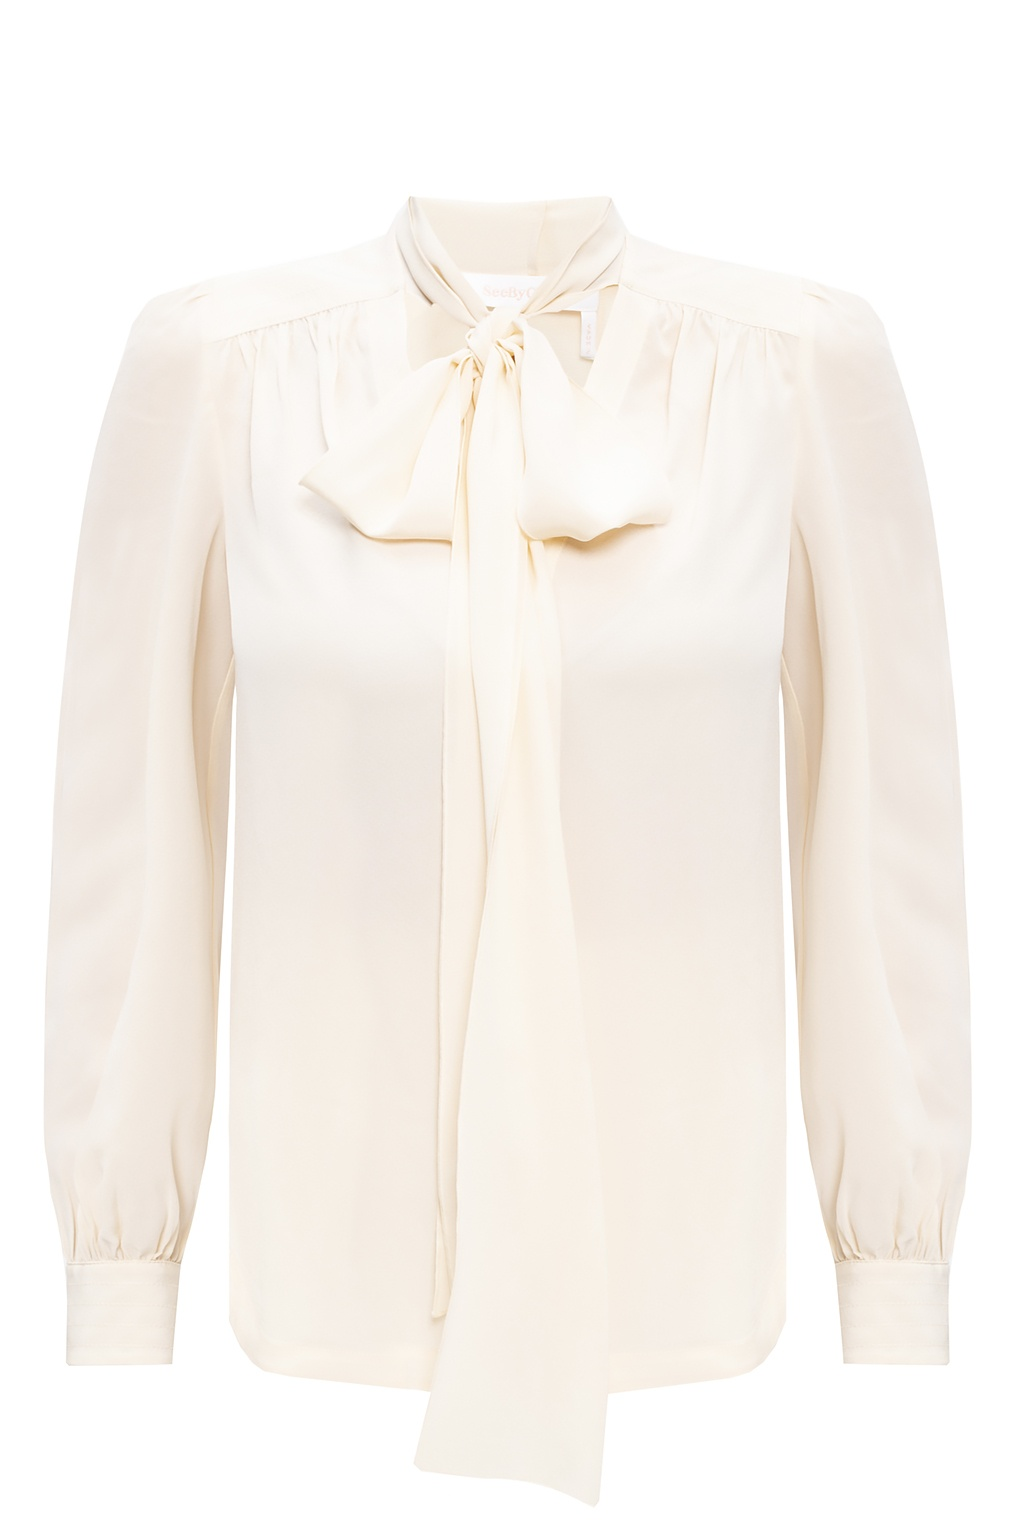 See By Chloe Silk top